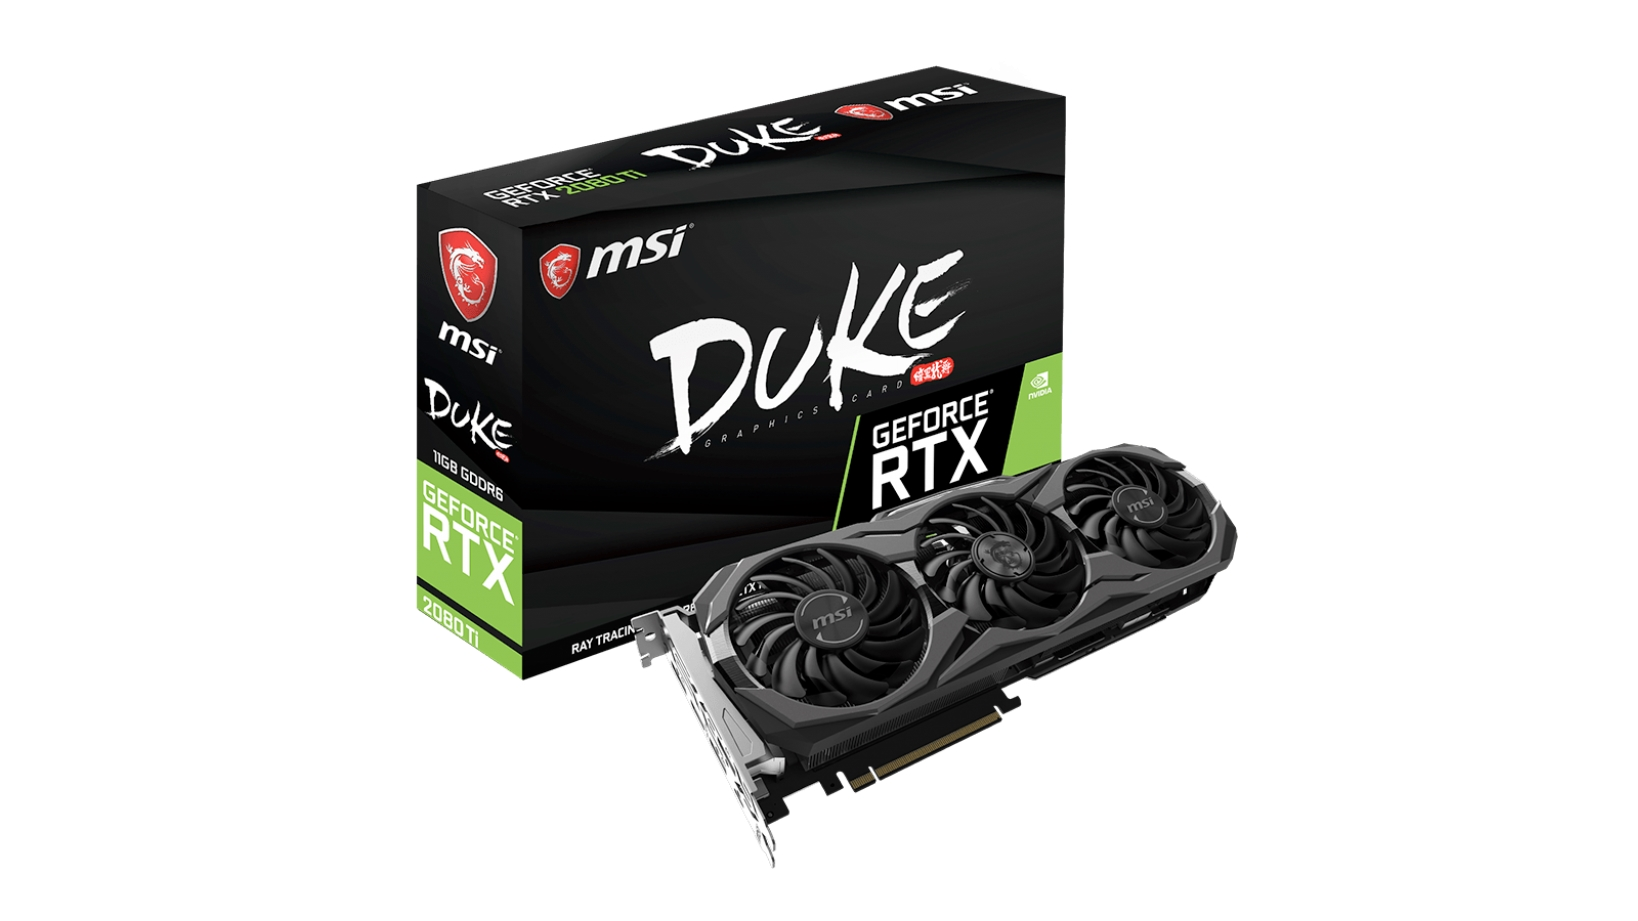 MSI GeForce RTX 2080 Ti 11GB Duke OC